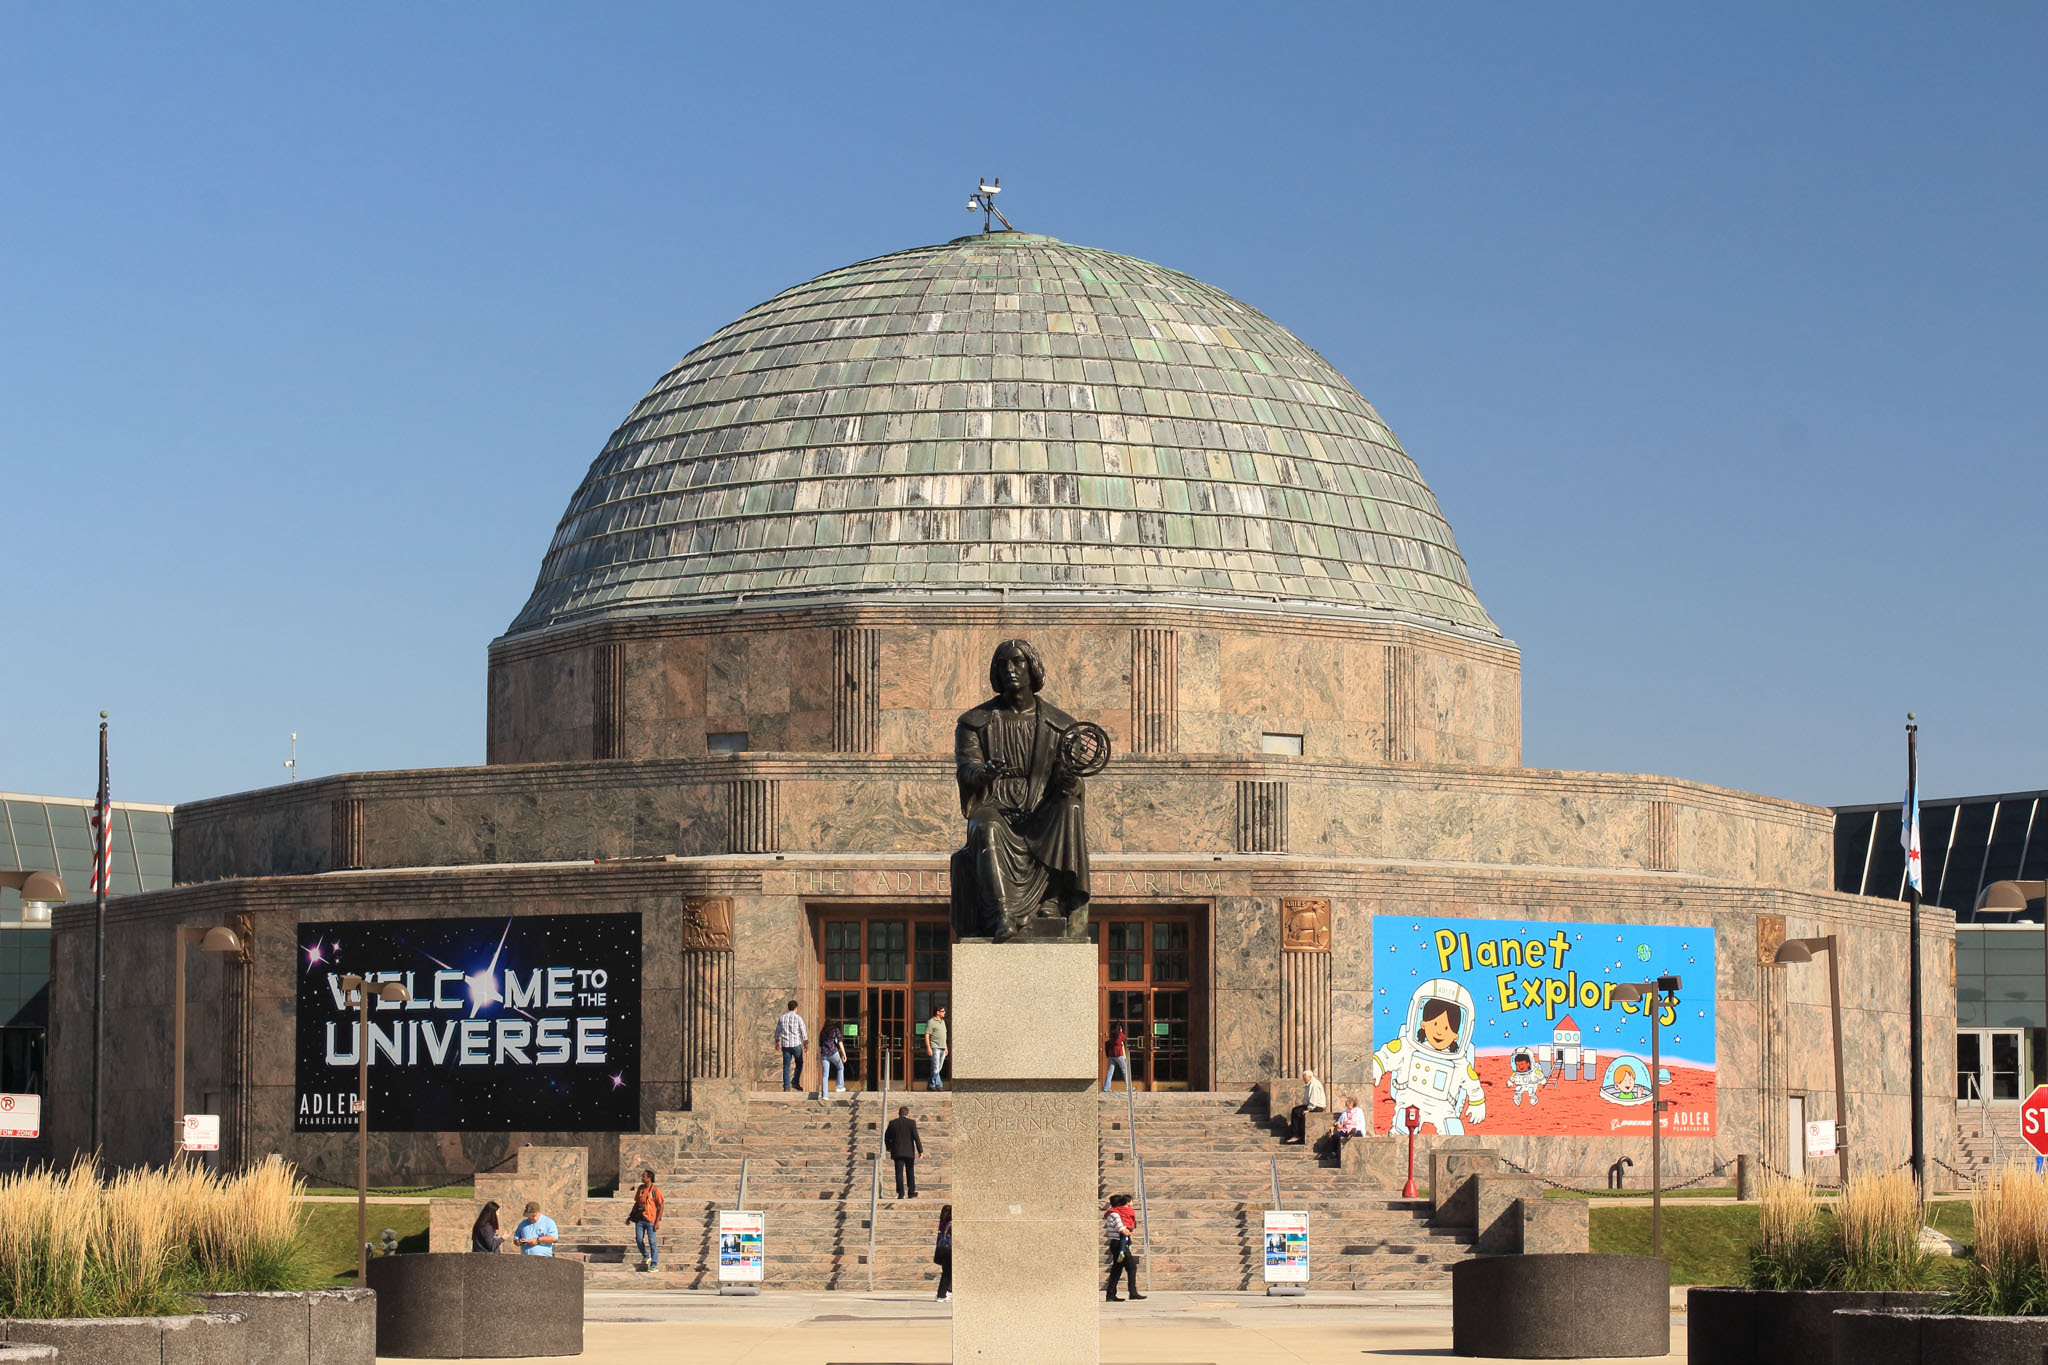 See stars at the Adler Planetarium.